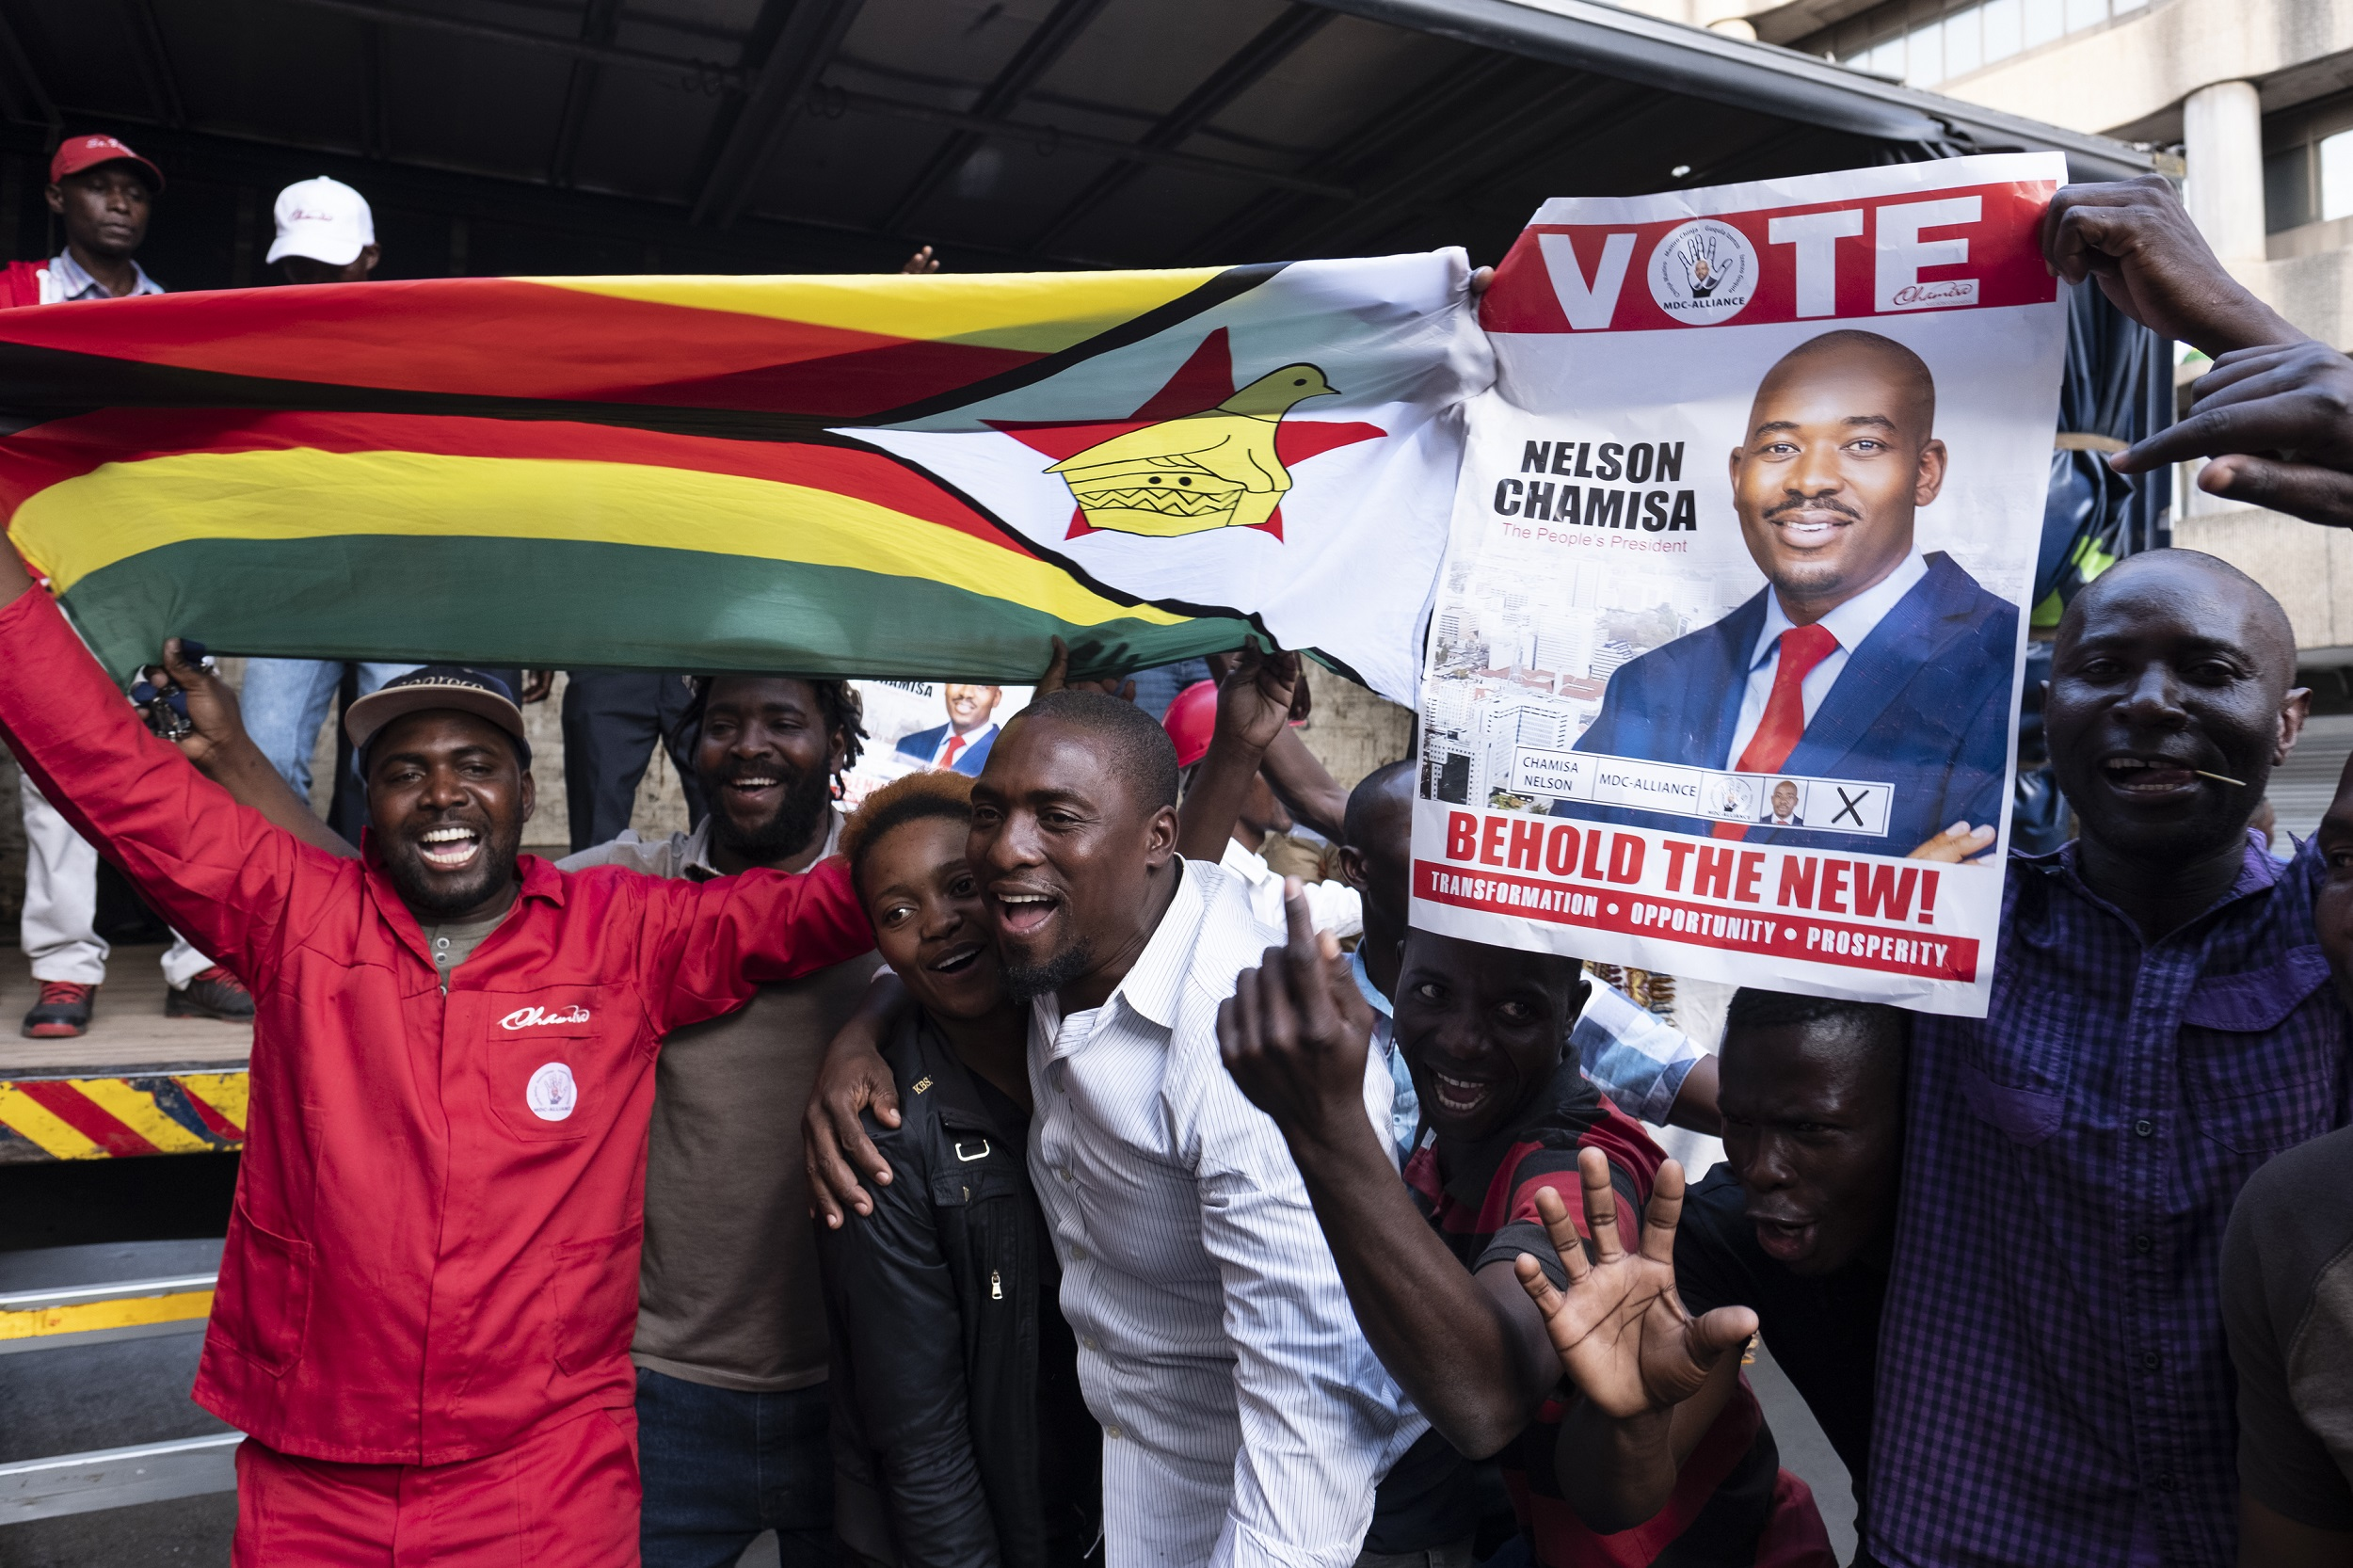 File:Zimbabwe's MDC opposition party launched a legal challenge to President Emmerson Mnangagwa's election victory.